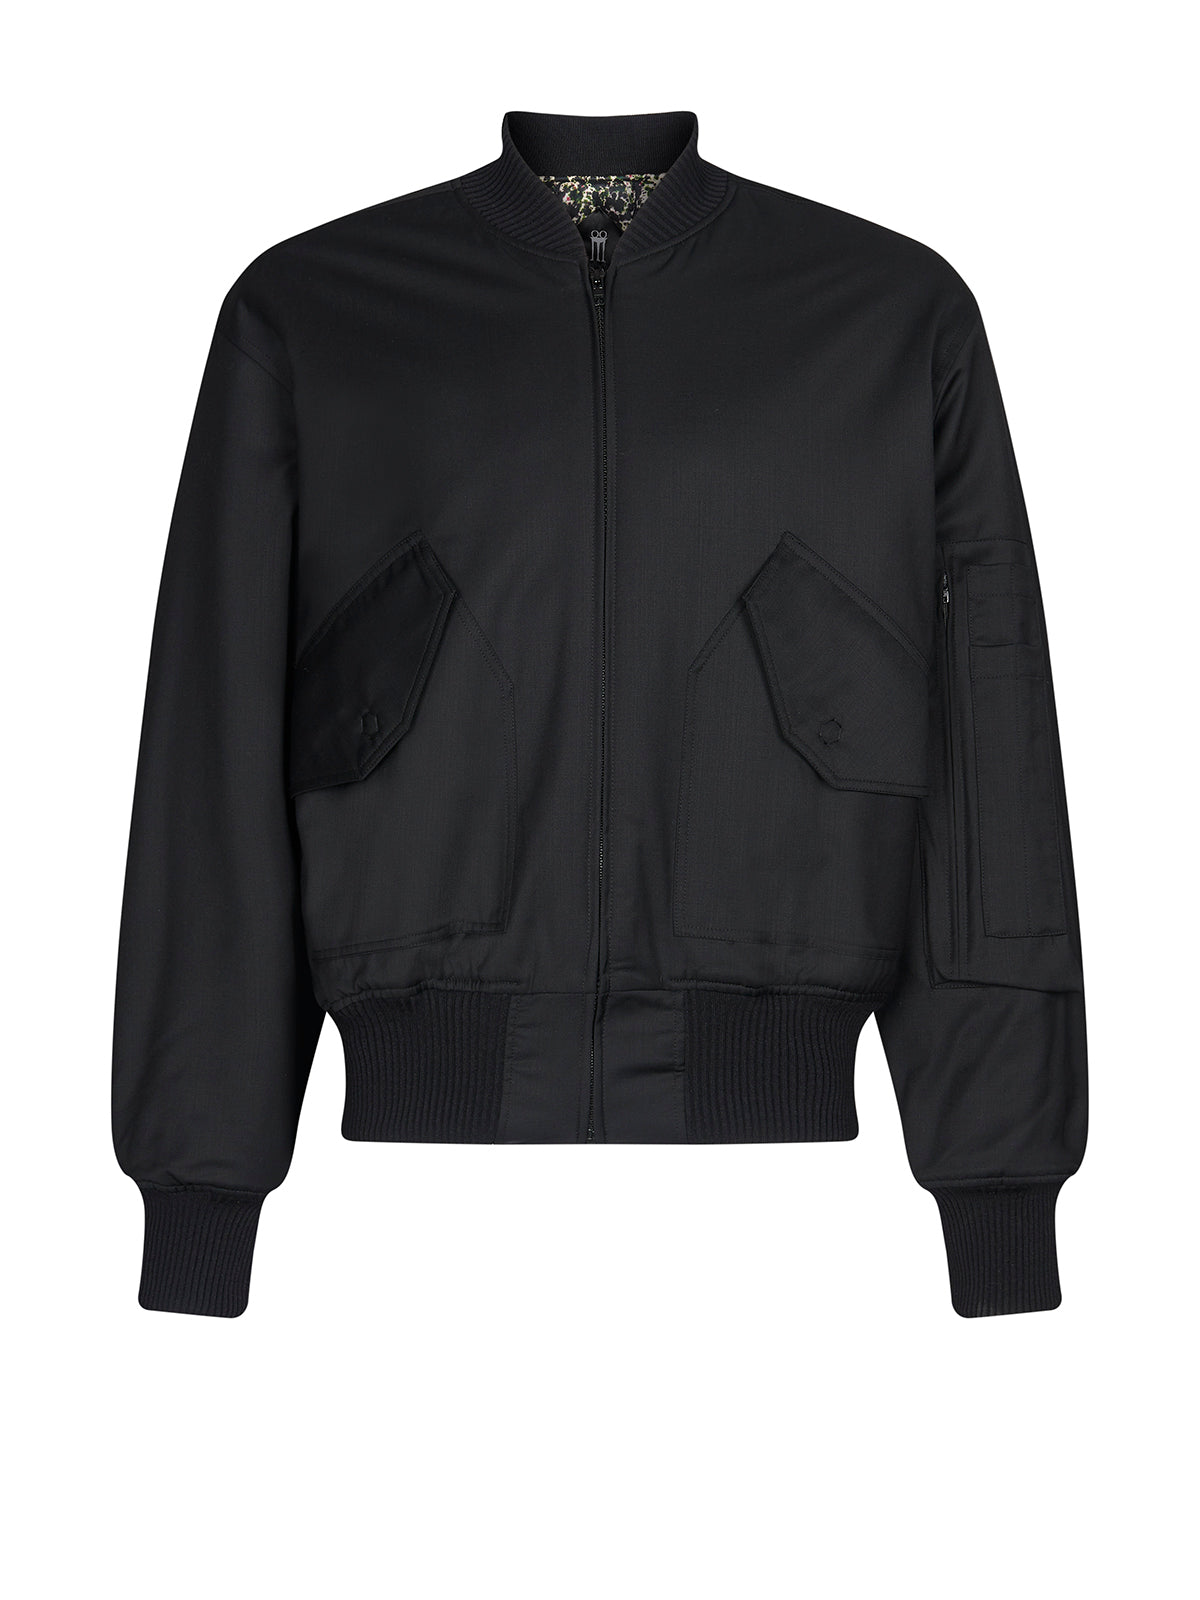 Iceman bomber jacket in black